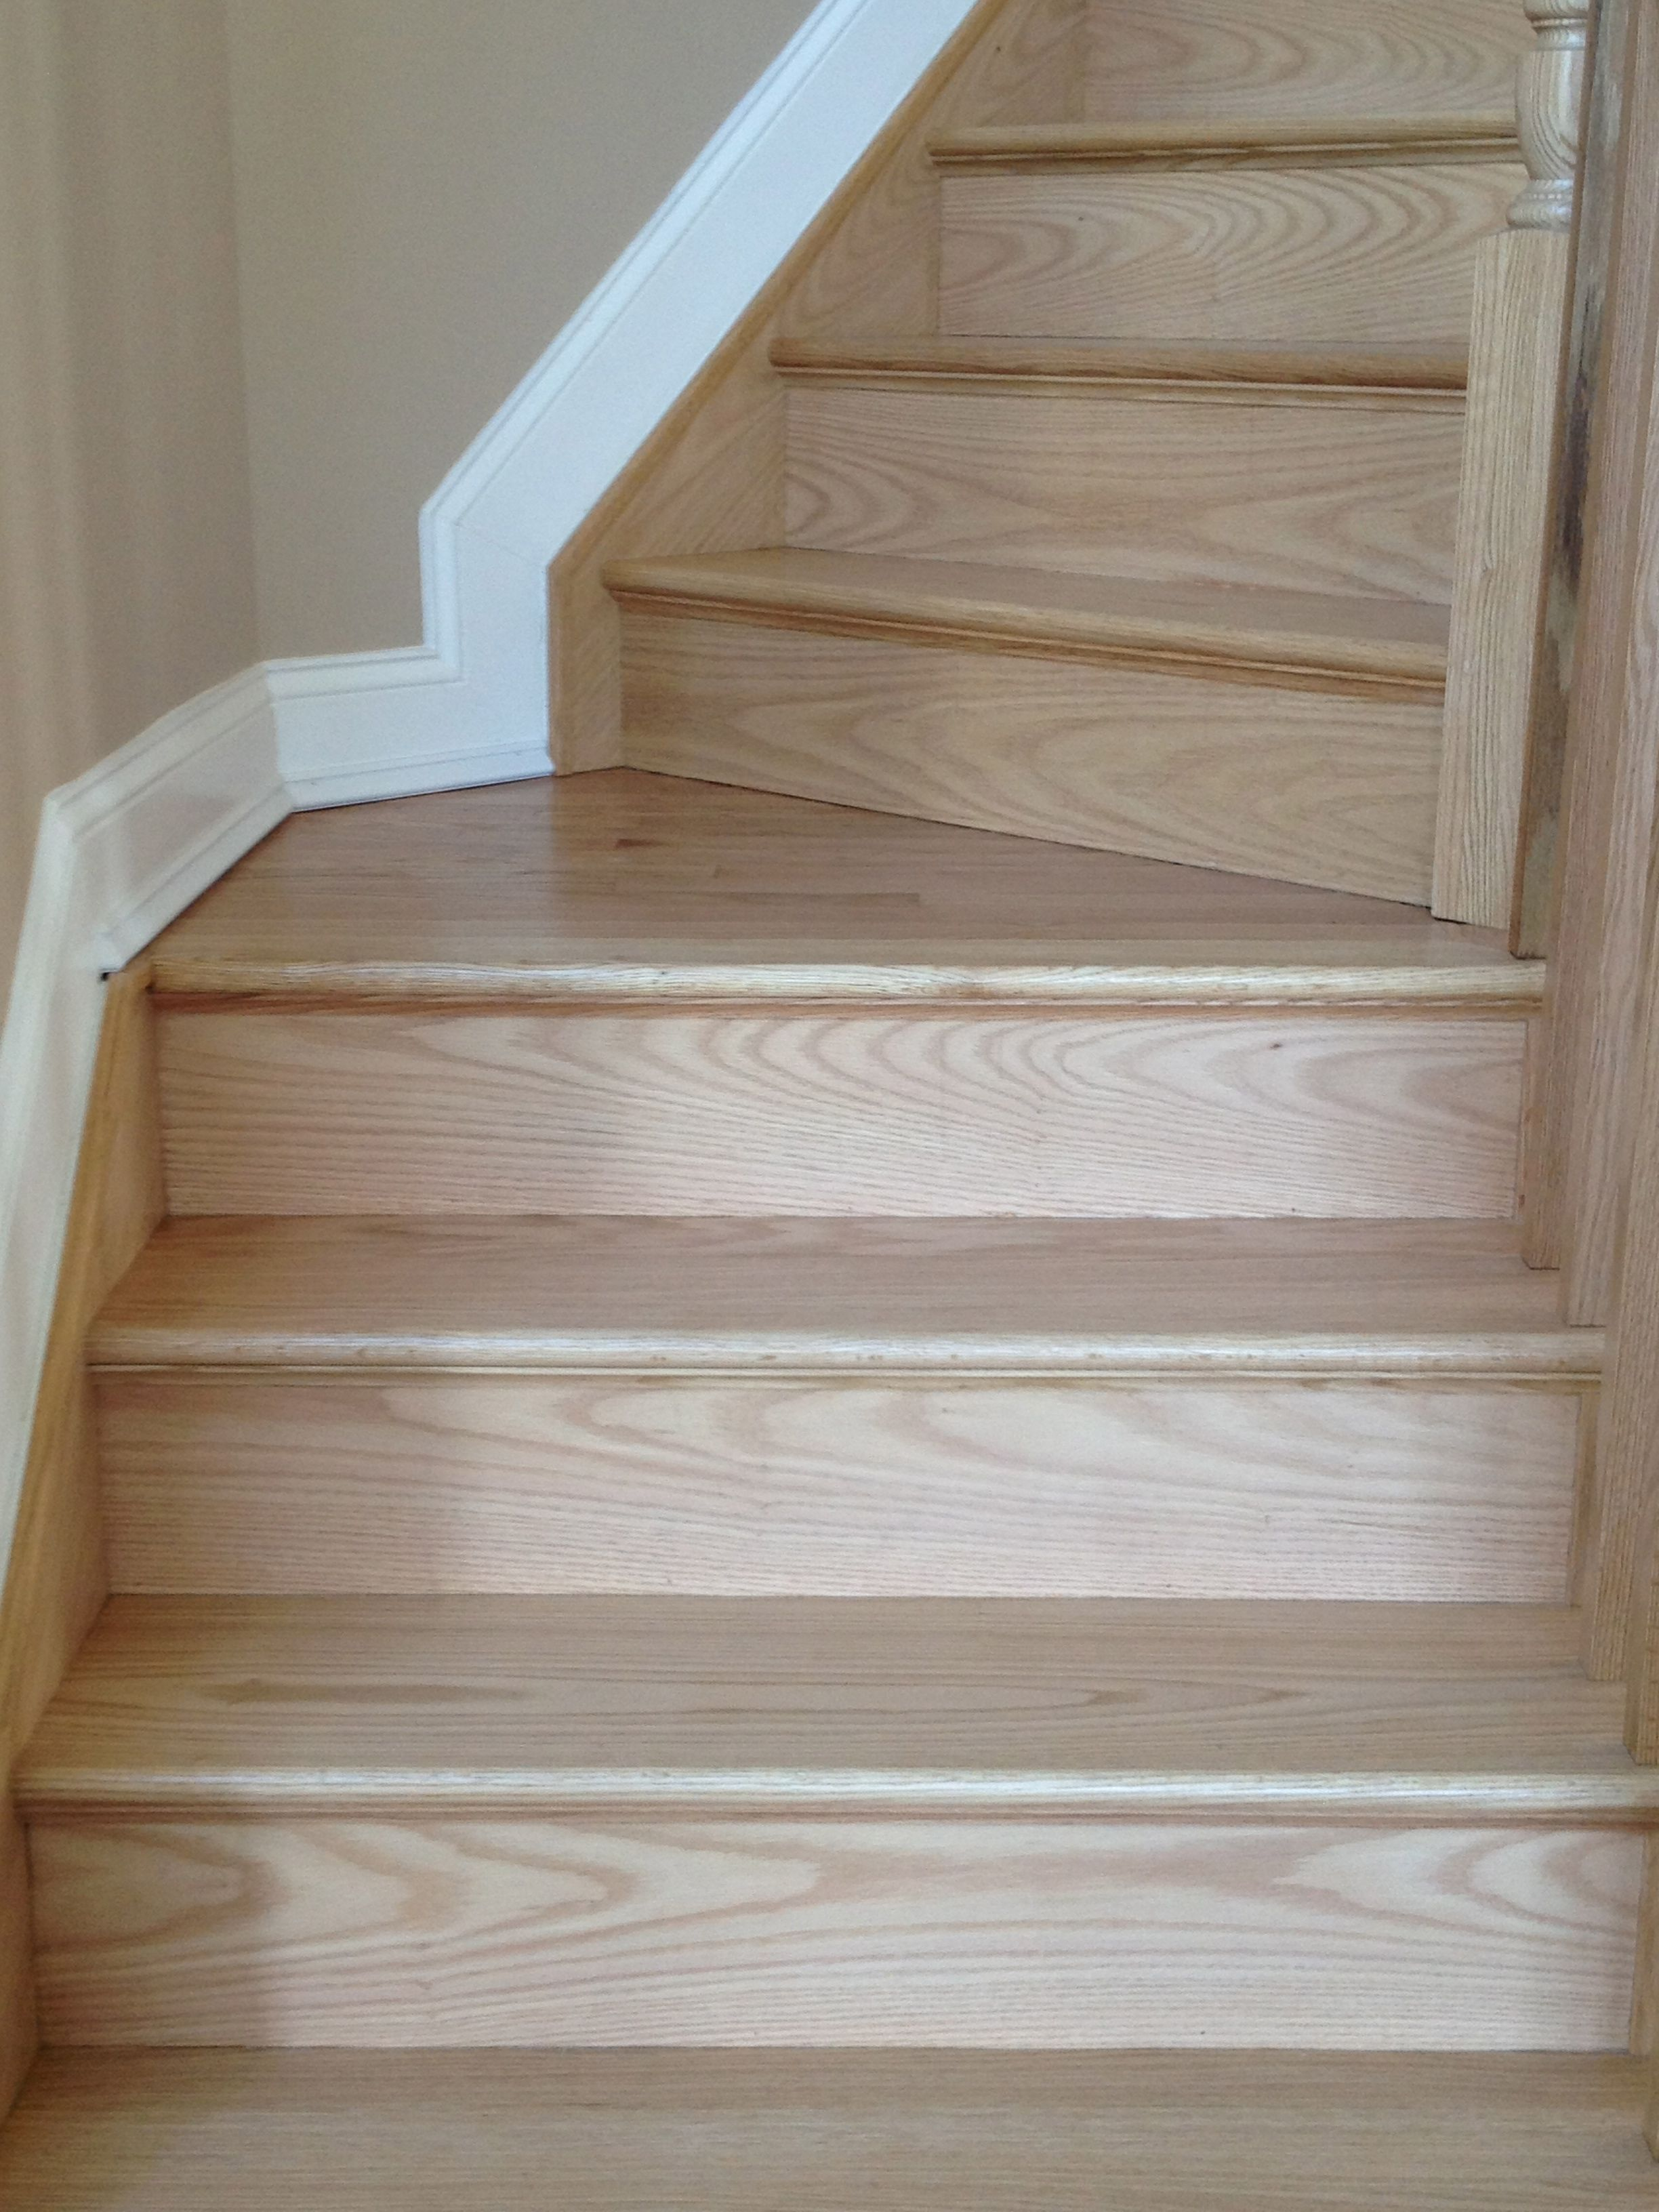 Gorsegner Brothers #Hardwood #Floors Features Replacement Red Oak #stair  Risers And Stringers Finished